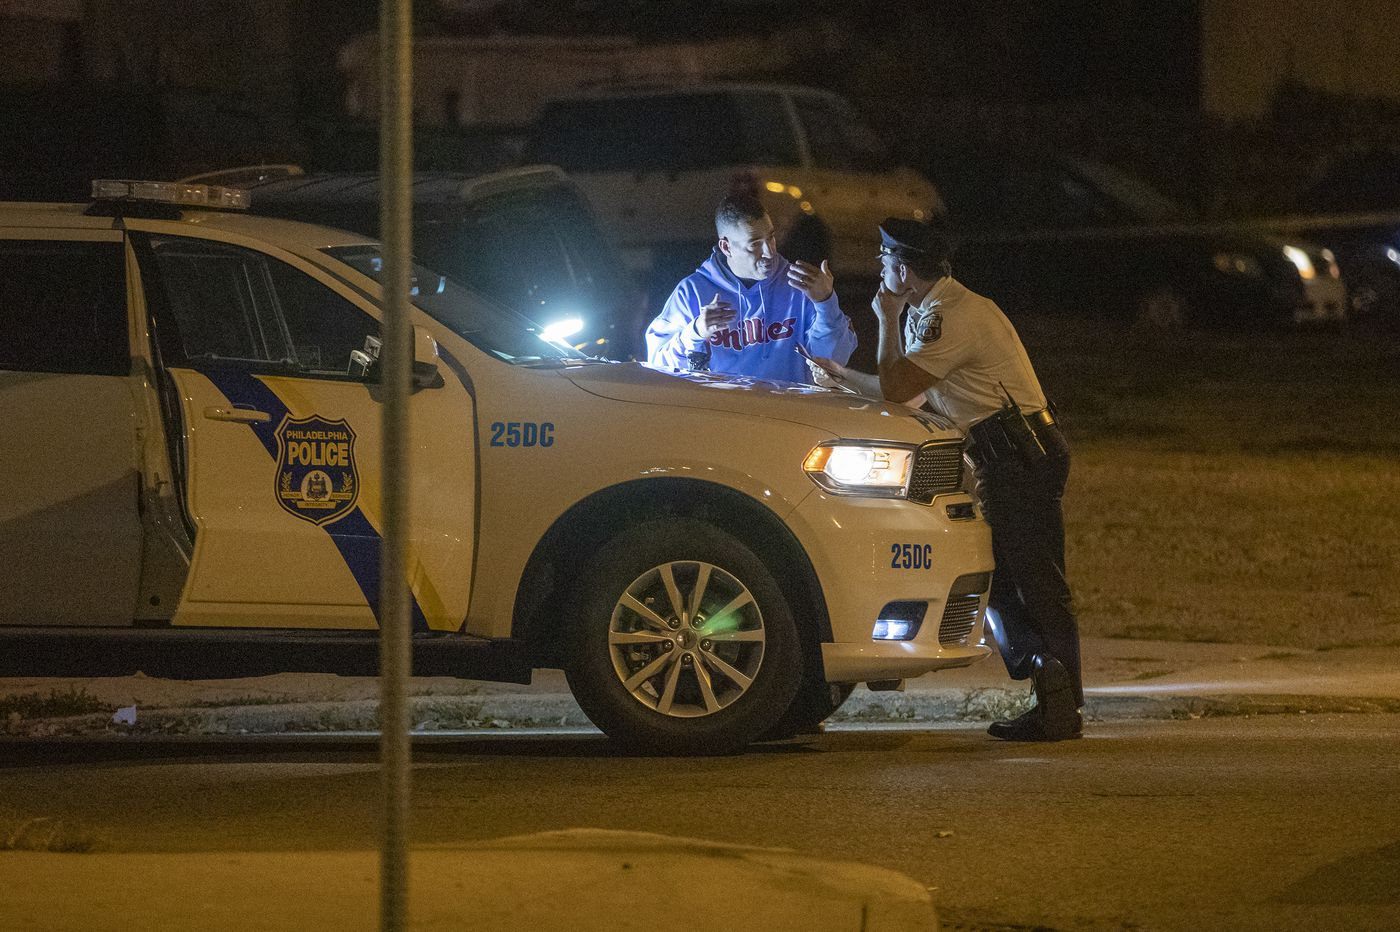 As Fairhill reels from weekend shooting, a reminder of government's role in preventing trauma | Opinion